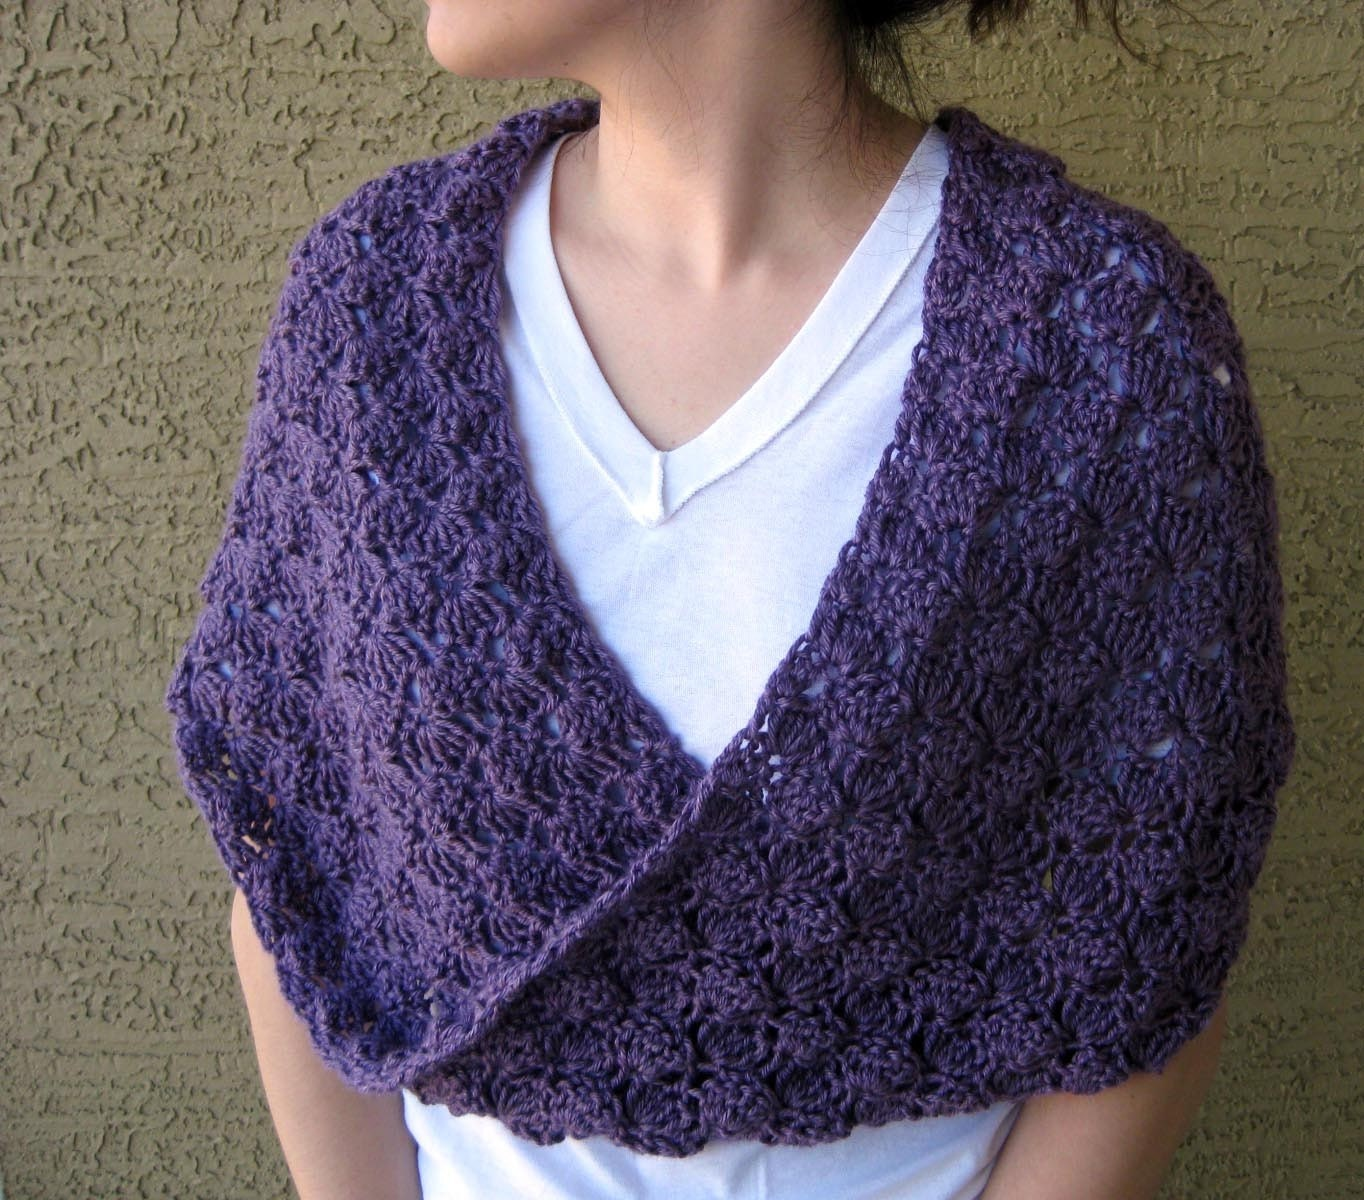 Vive Provence Crochet Mobius Wrap by BijouxTricotage on Etsy